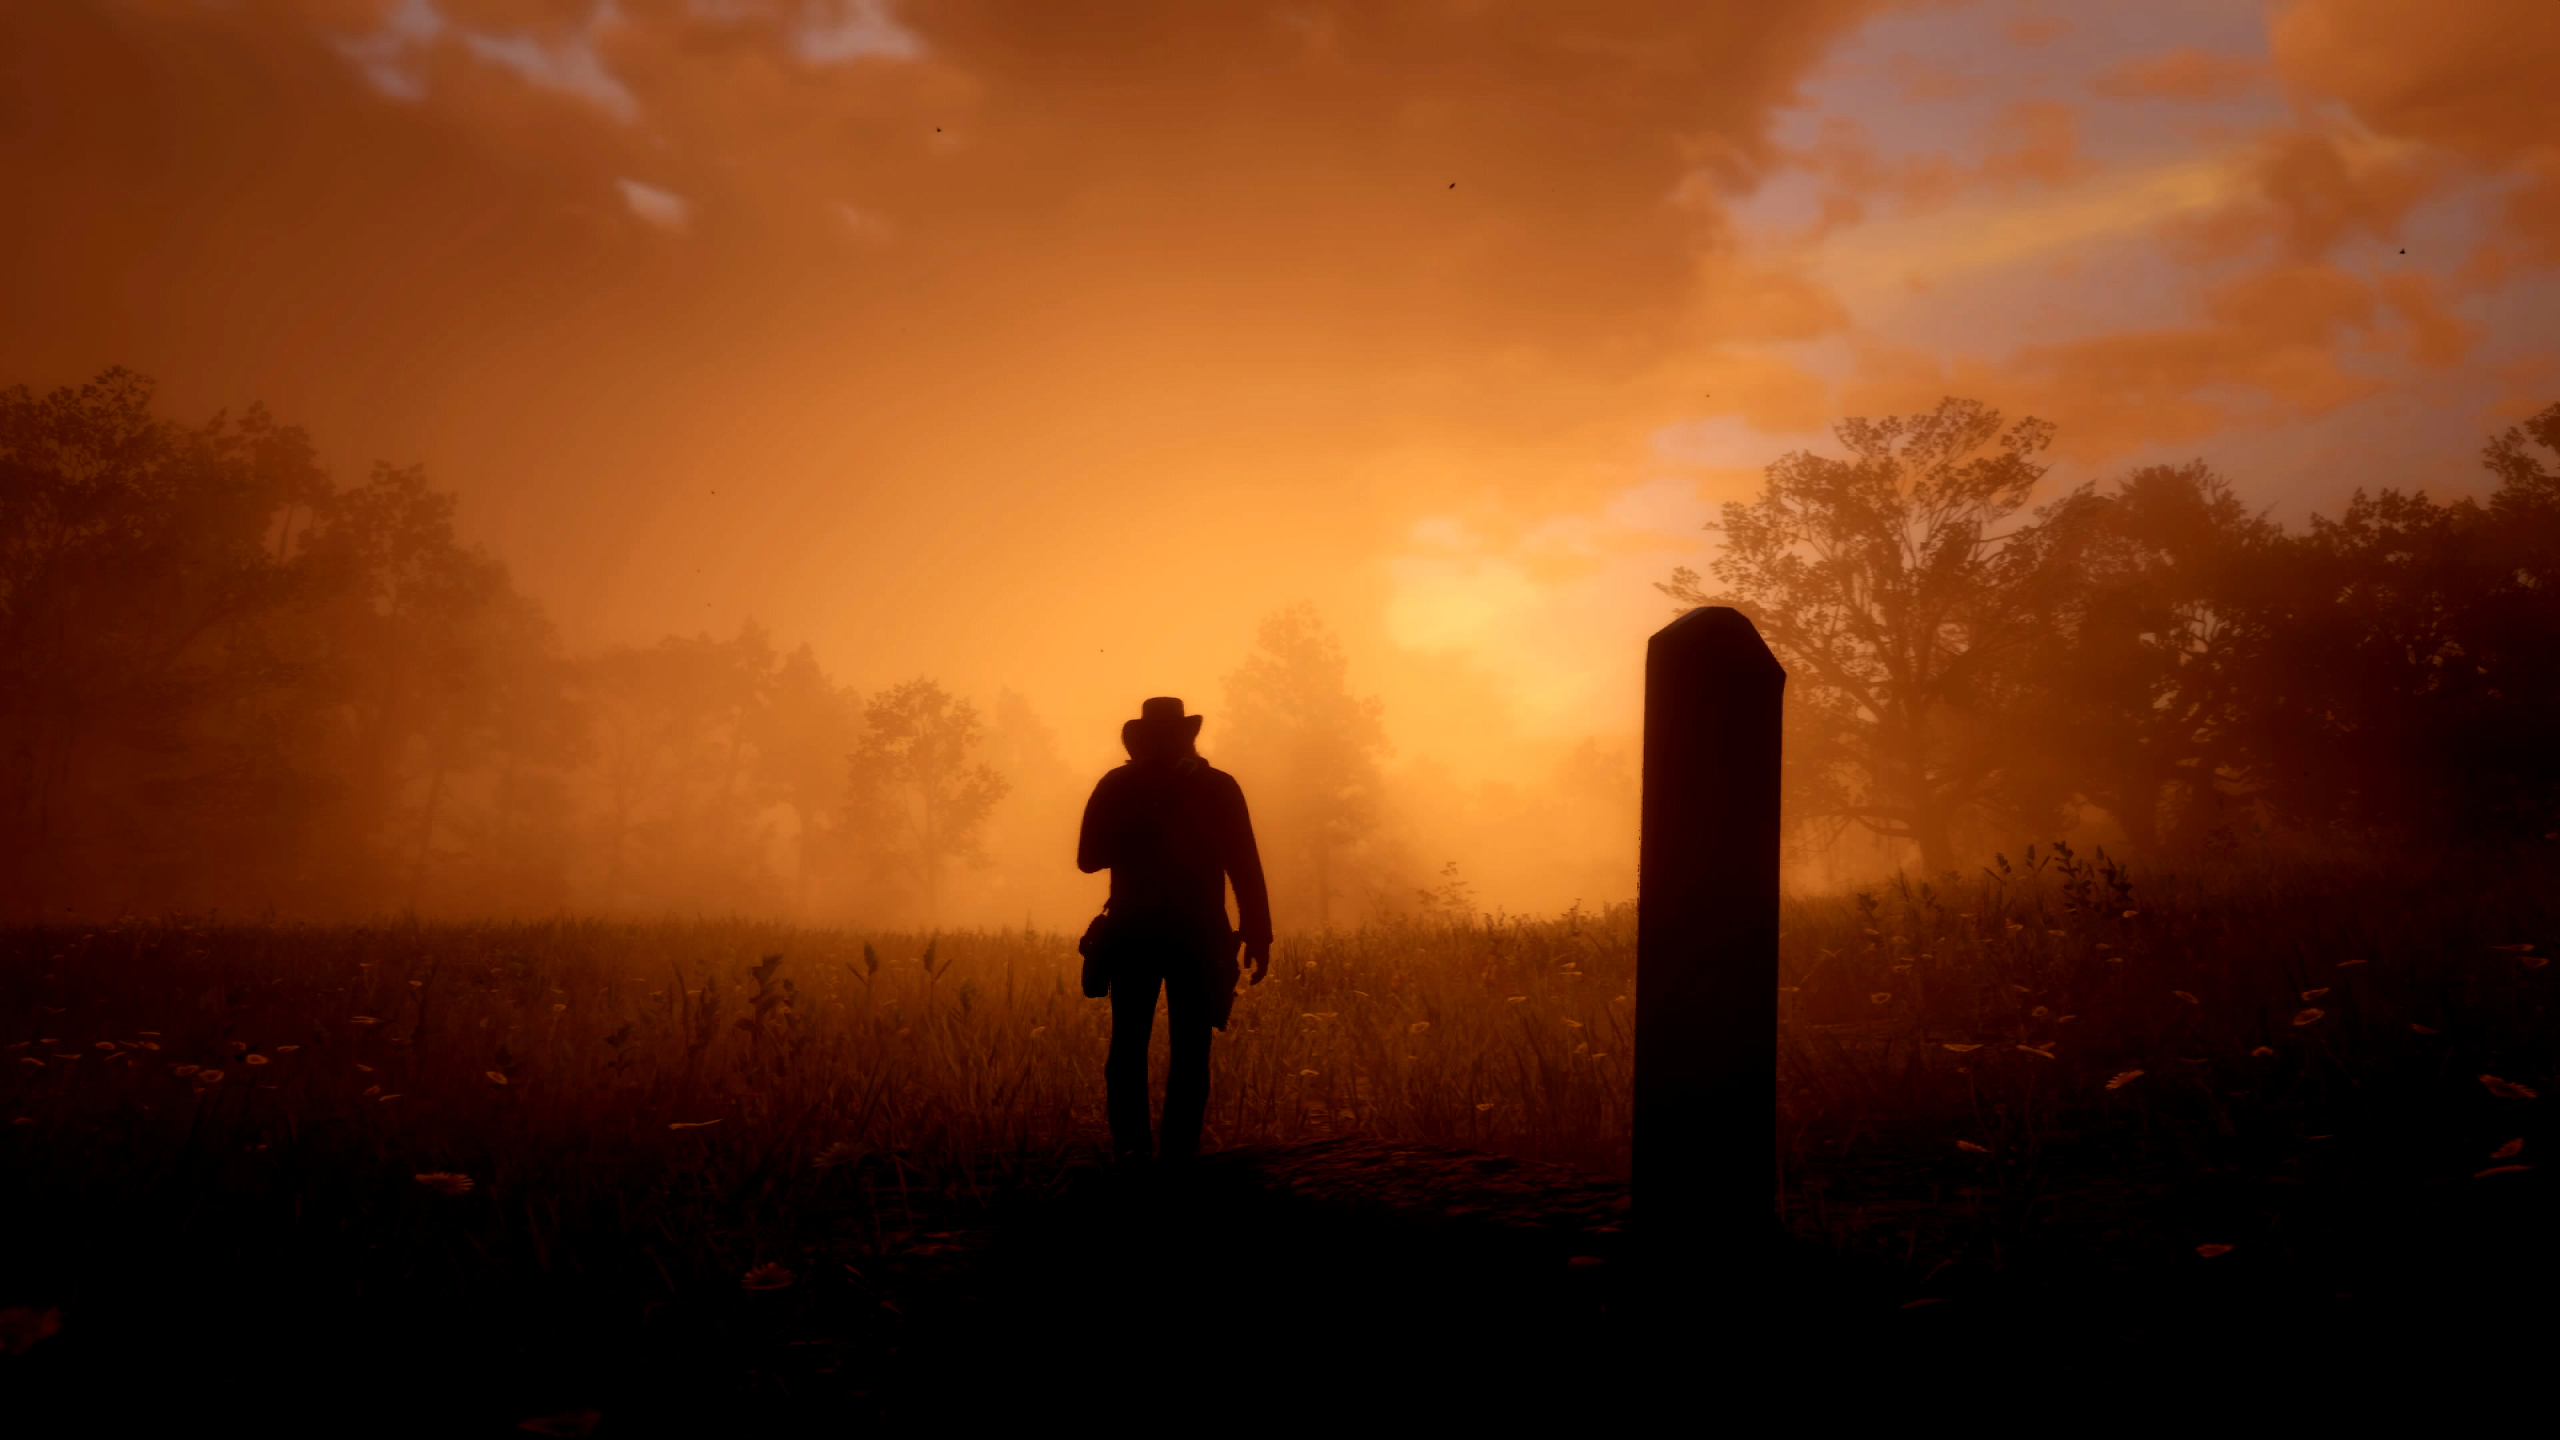 2560x1440 Game Red Dead Redemption 2 1440p Resolution Wallpaper